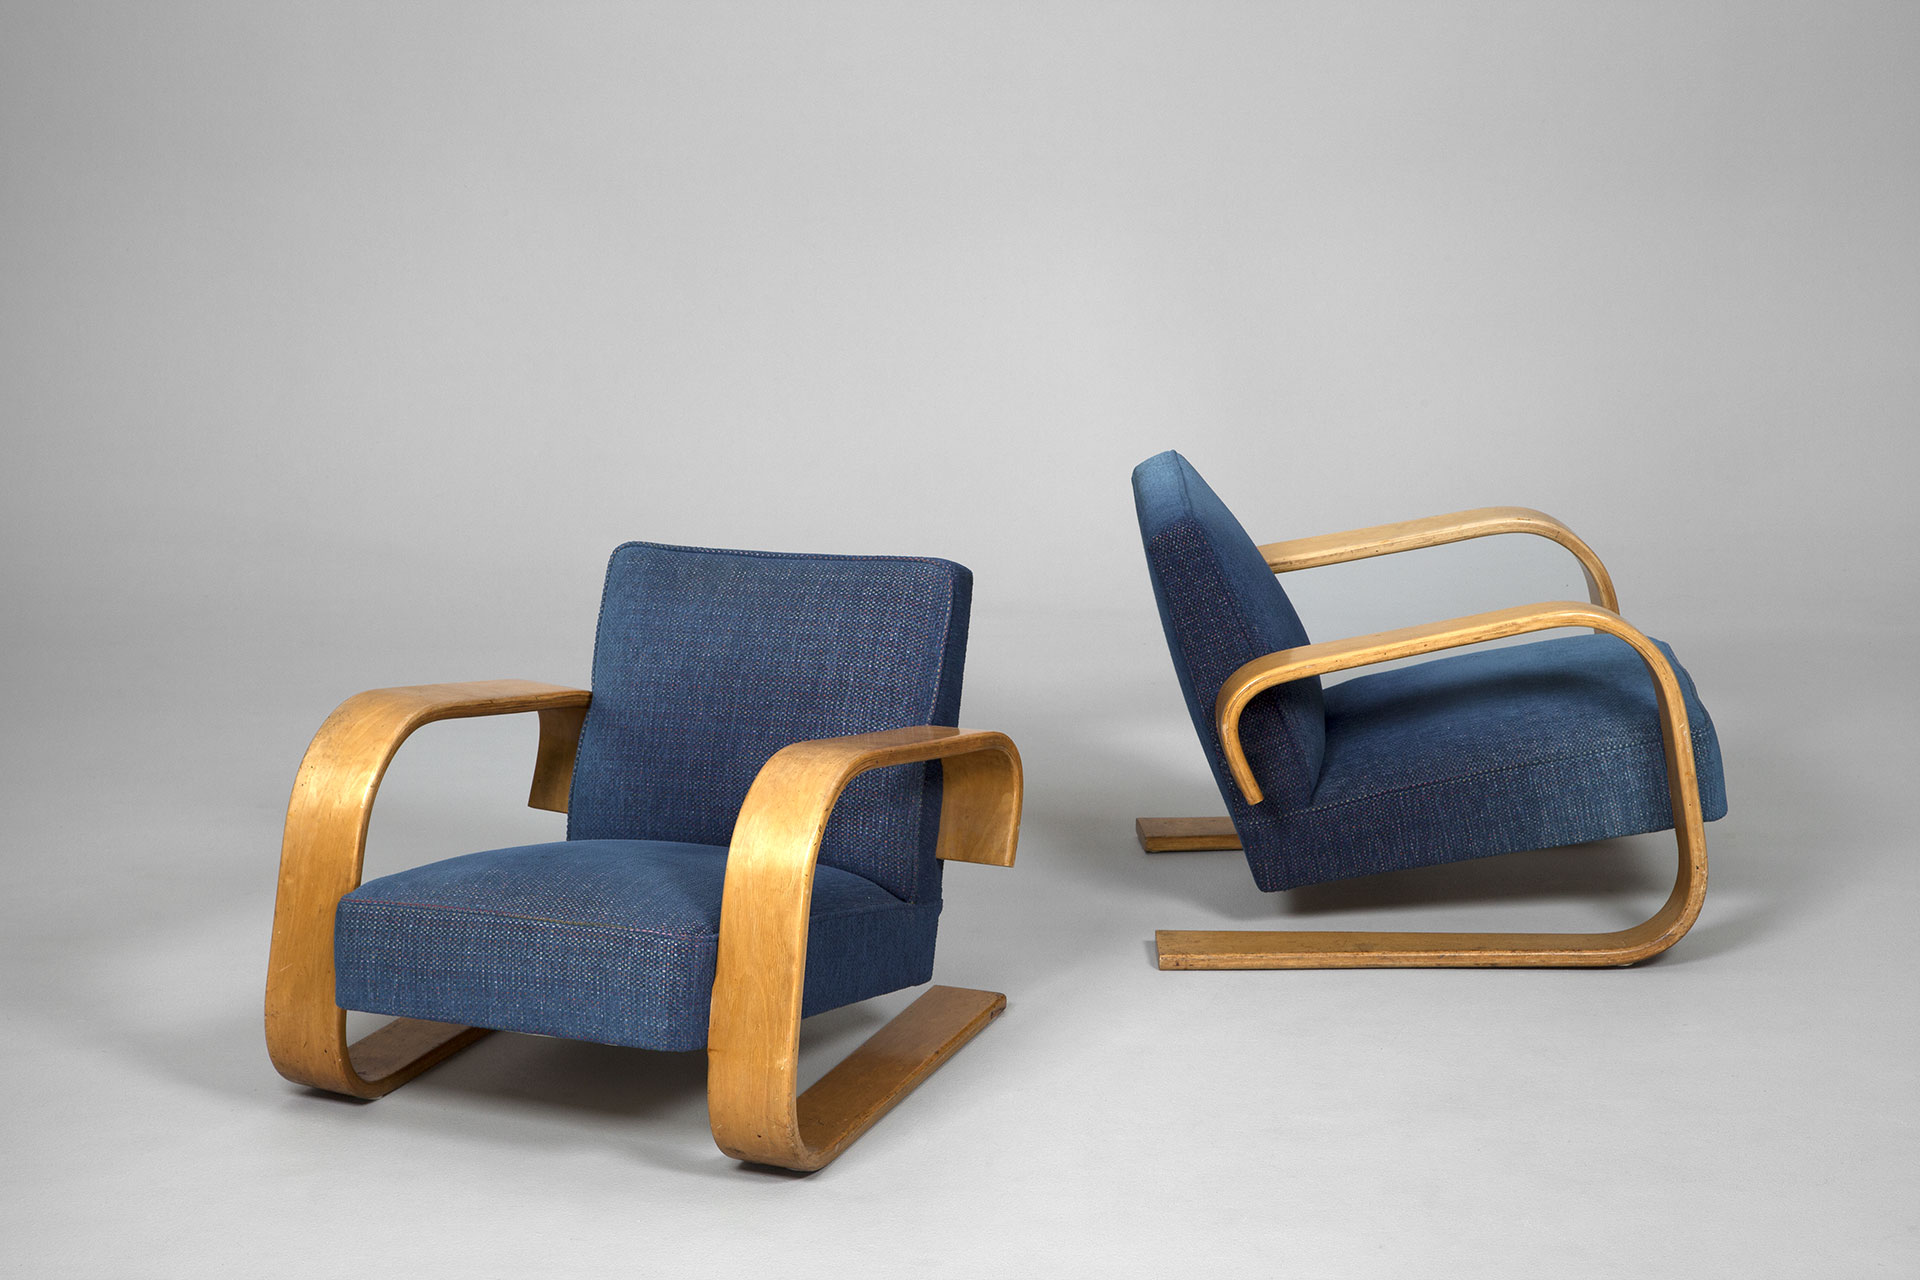 Jacksons Pair of Tank Chairs Alvar Aalto